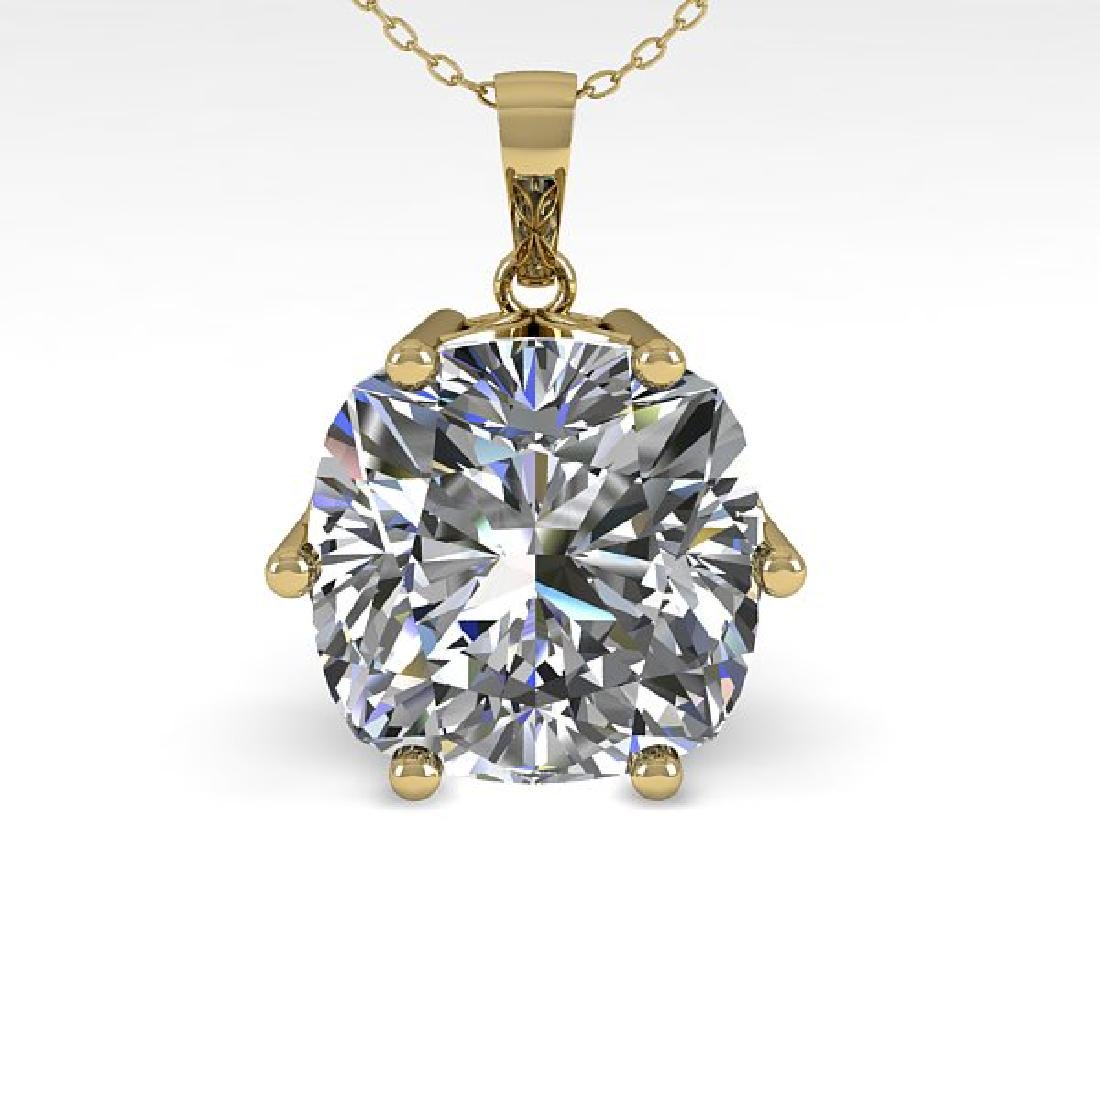 1 CTW VS/SI Cushion Cut Diamond Art Deco Necklace 14K - 2